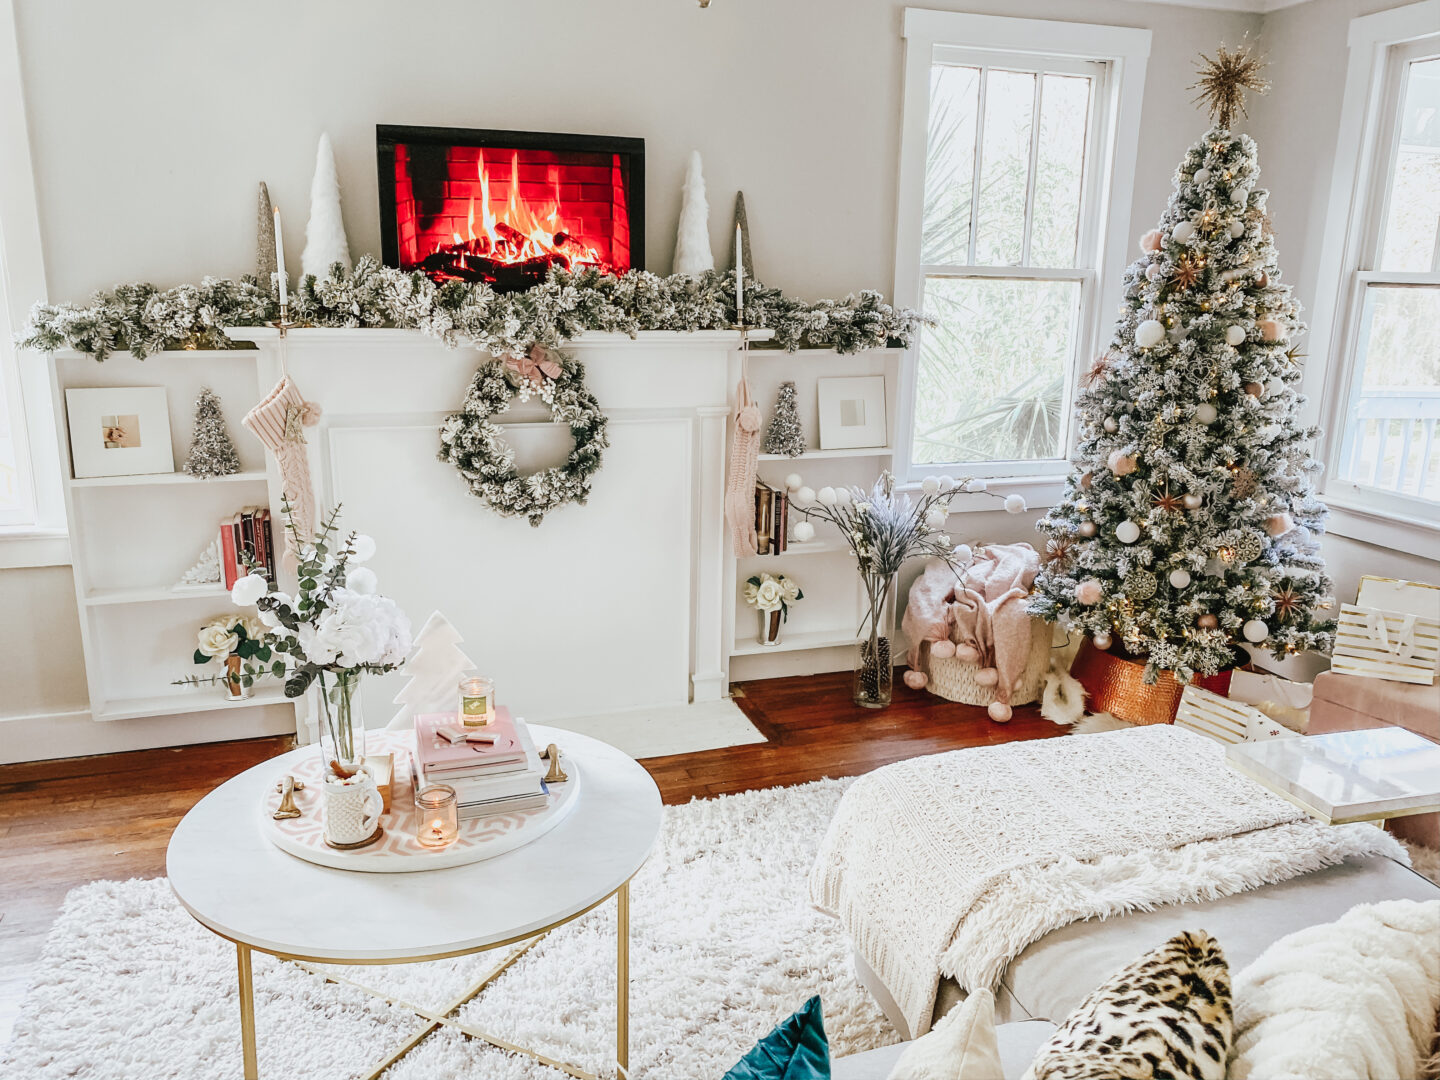 cozy living room holiday decorations